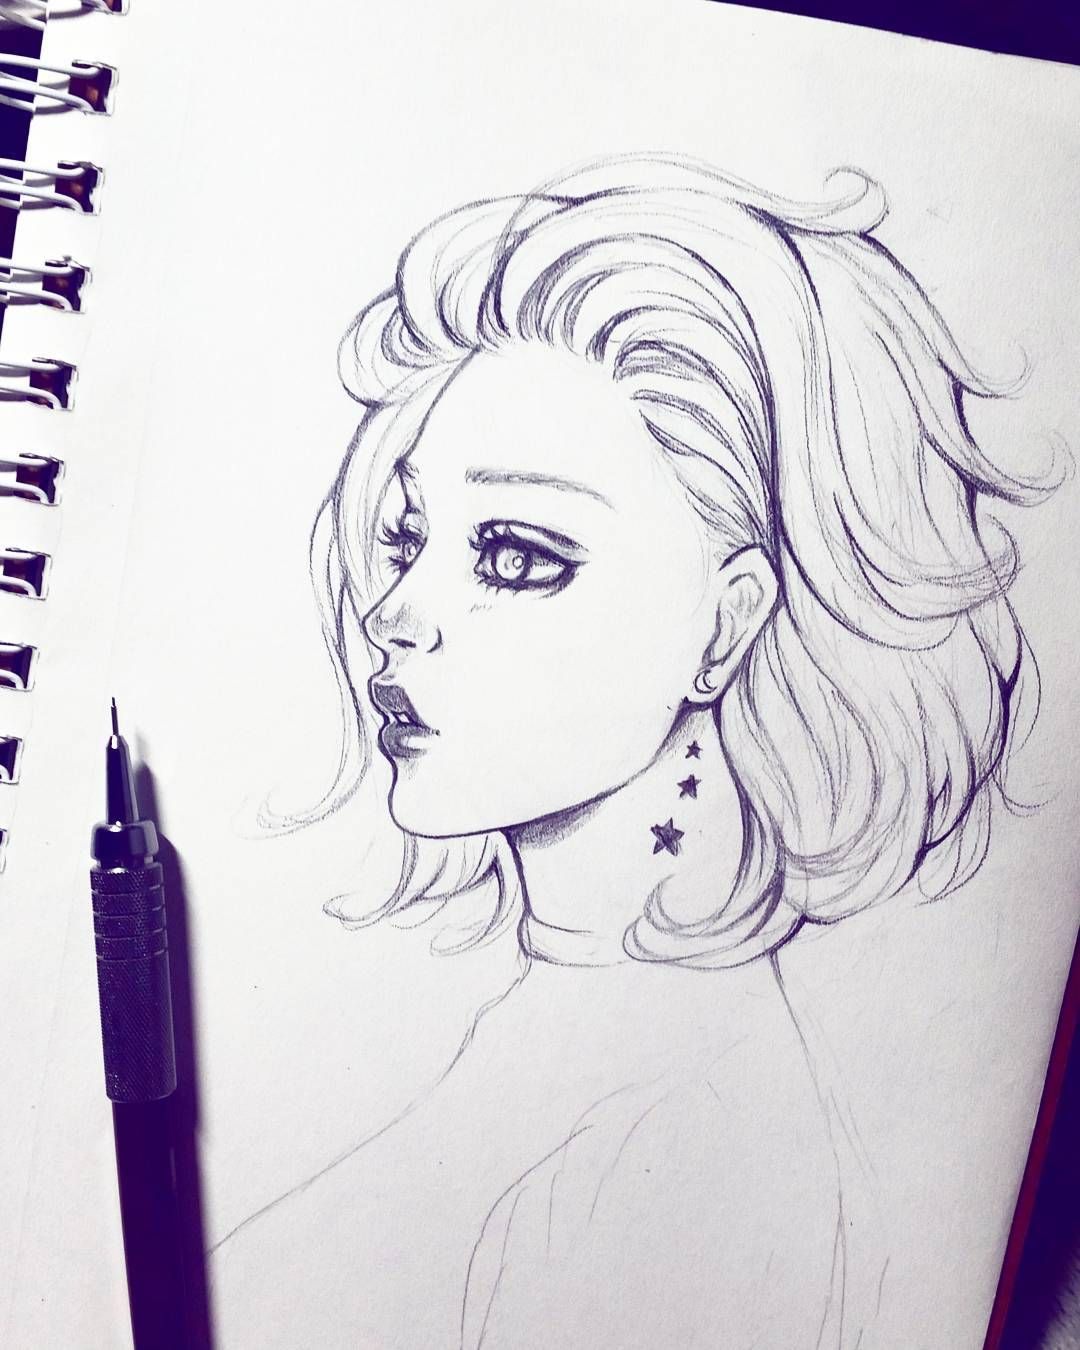 Drawings Of Girls With Short Hair : drawings, girls, short, 2,701, Likes,, Comments, Tamtrac, (@tamtrac12), Instagram:, Short, Ha…, Drawing,, Hair,, Drawing